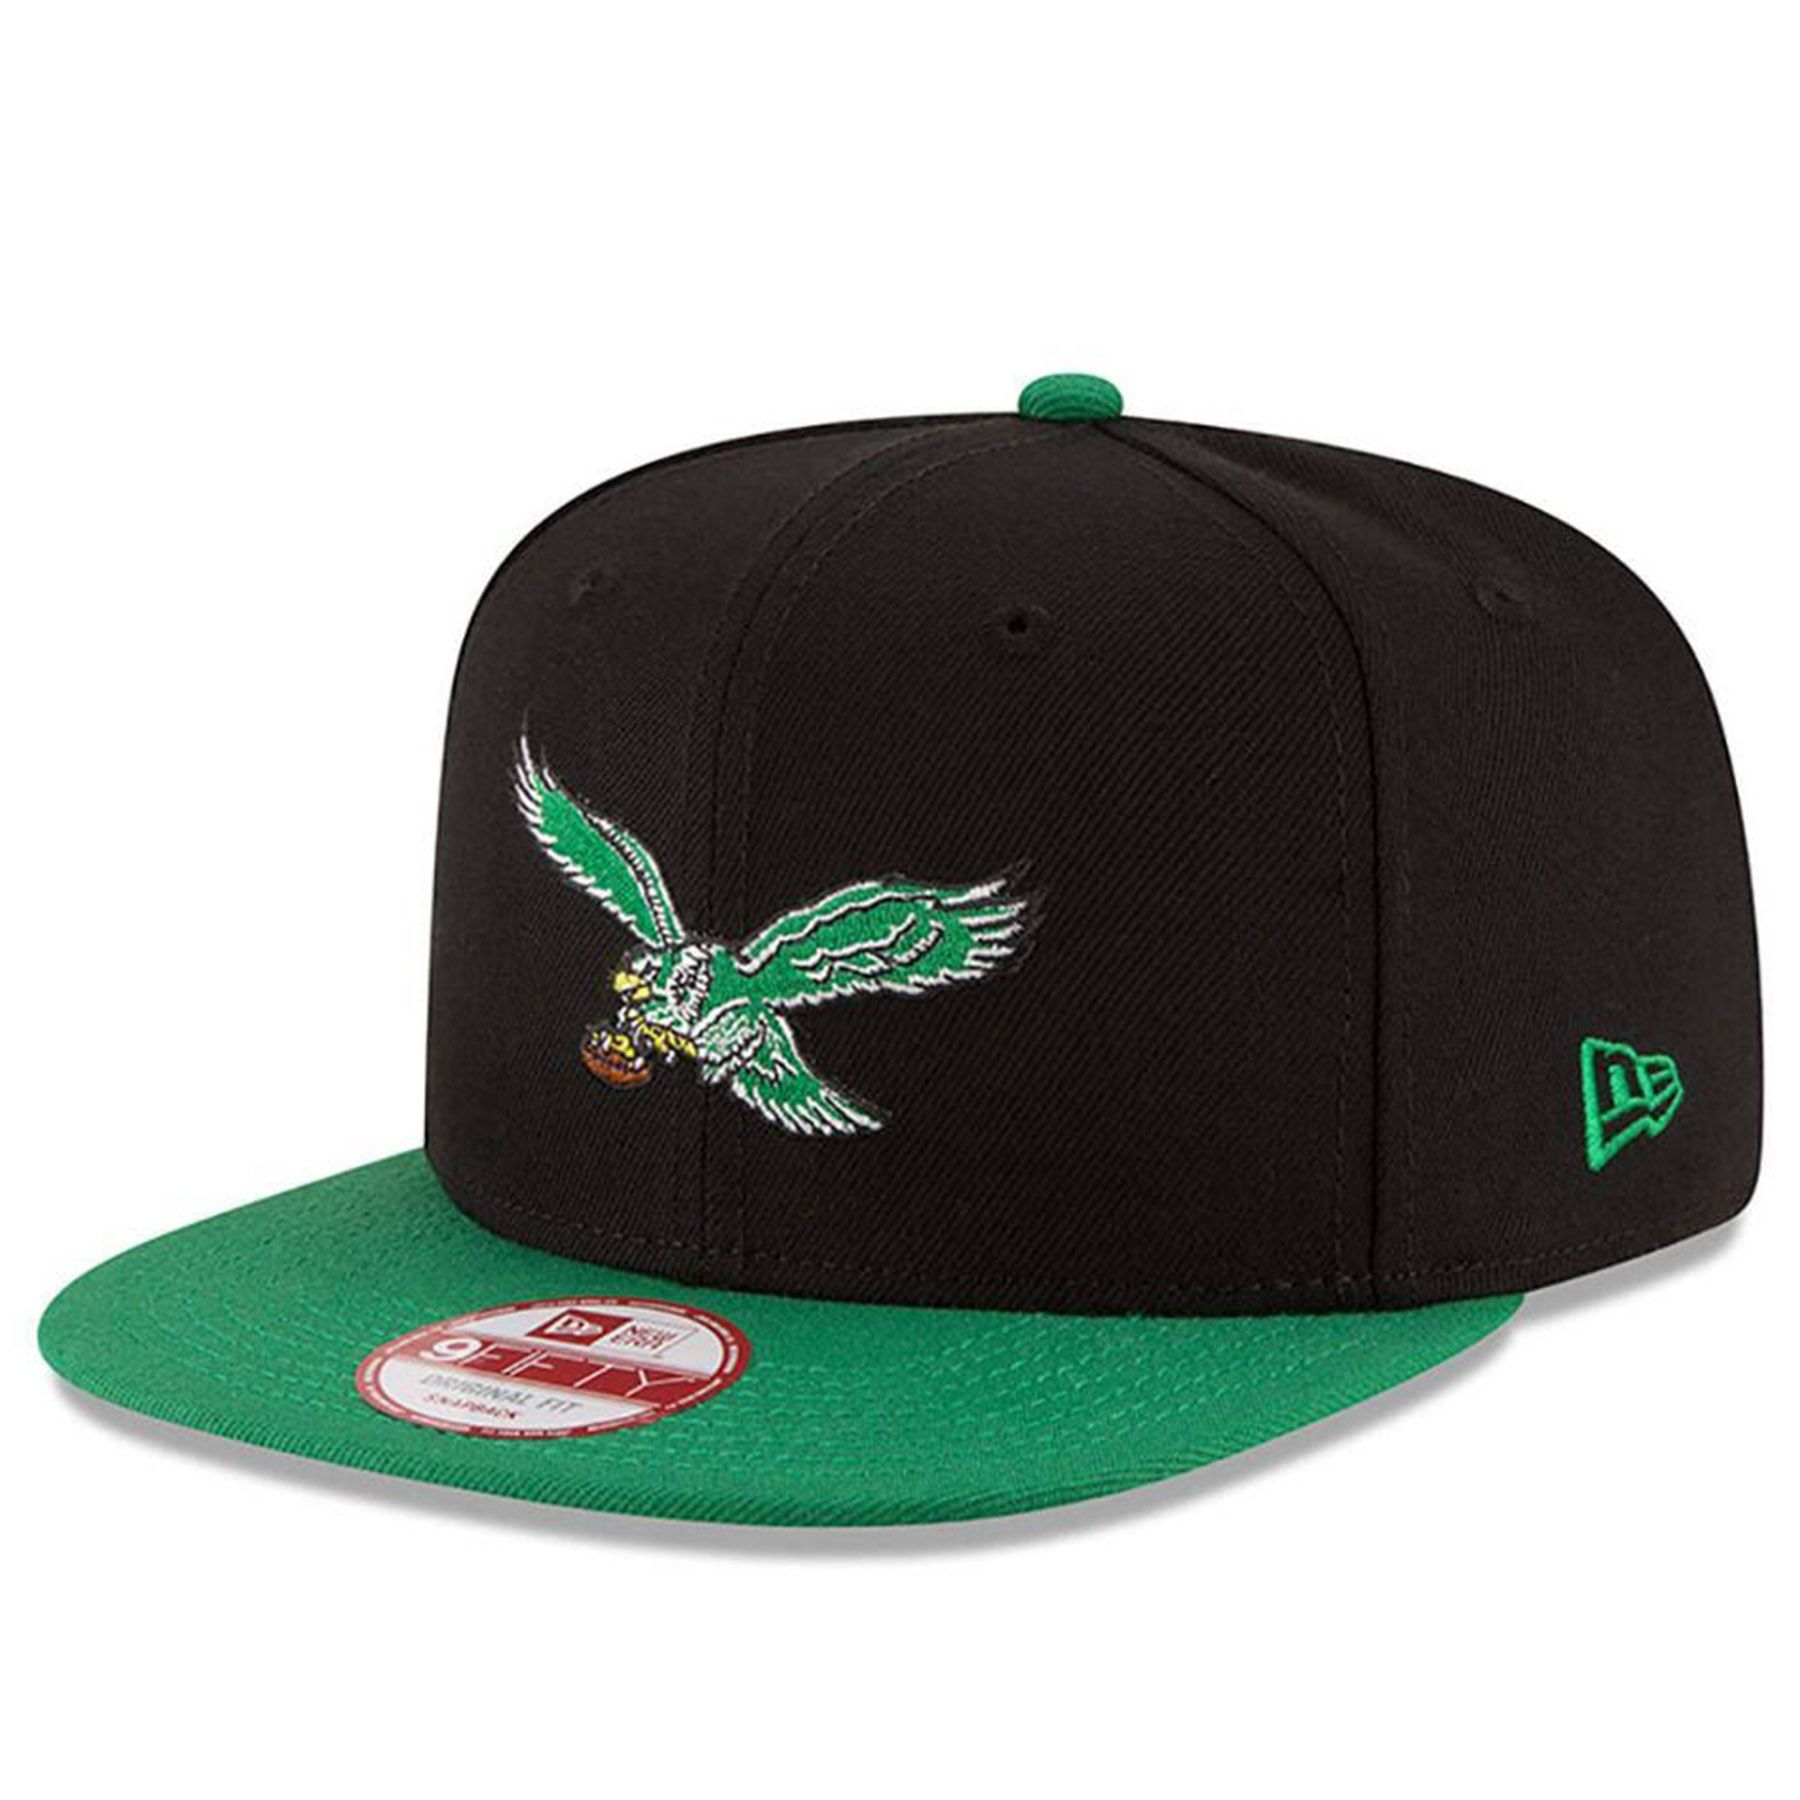 premium selection e1787 291a8 Just got this new Philadelphia Eagles snapback hat in, already available  for purchase on the online site! CapSwag.com  philadelphiaeagles  gobirds   philly ...